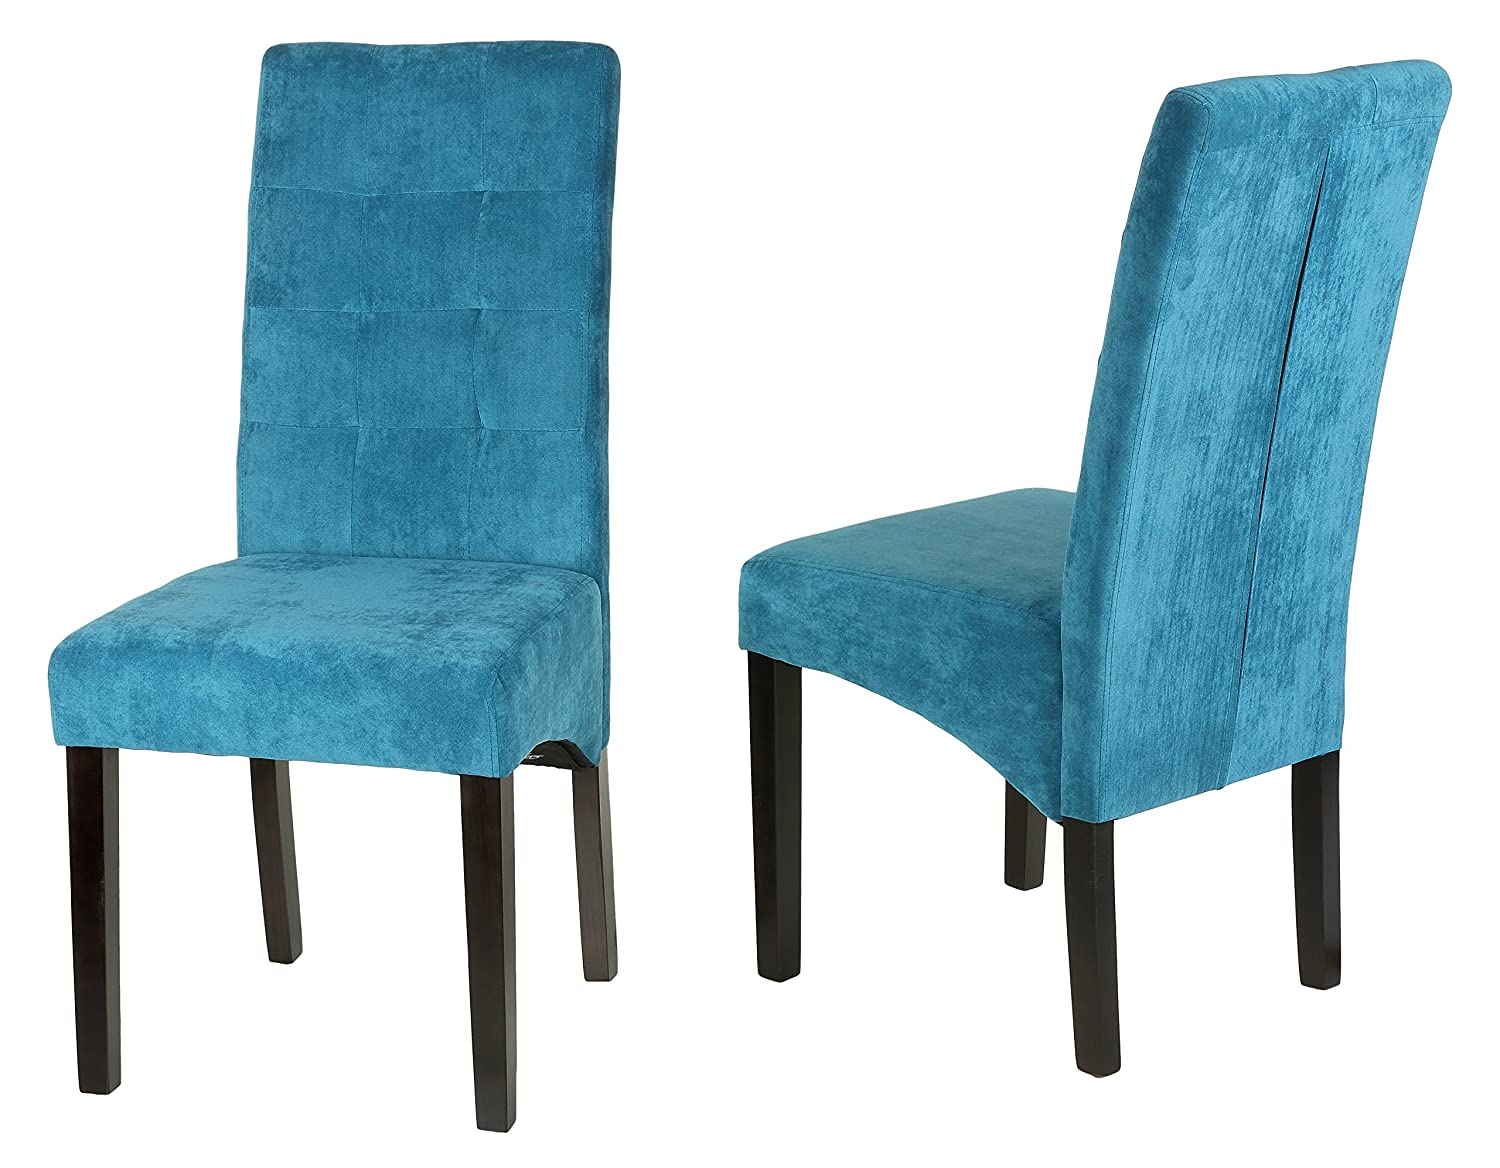 Cortesi Home Monty Microfiber Dining Chair, bluee, Set of 2